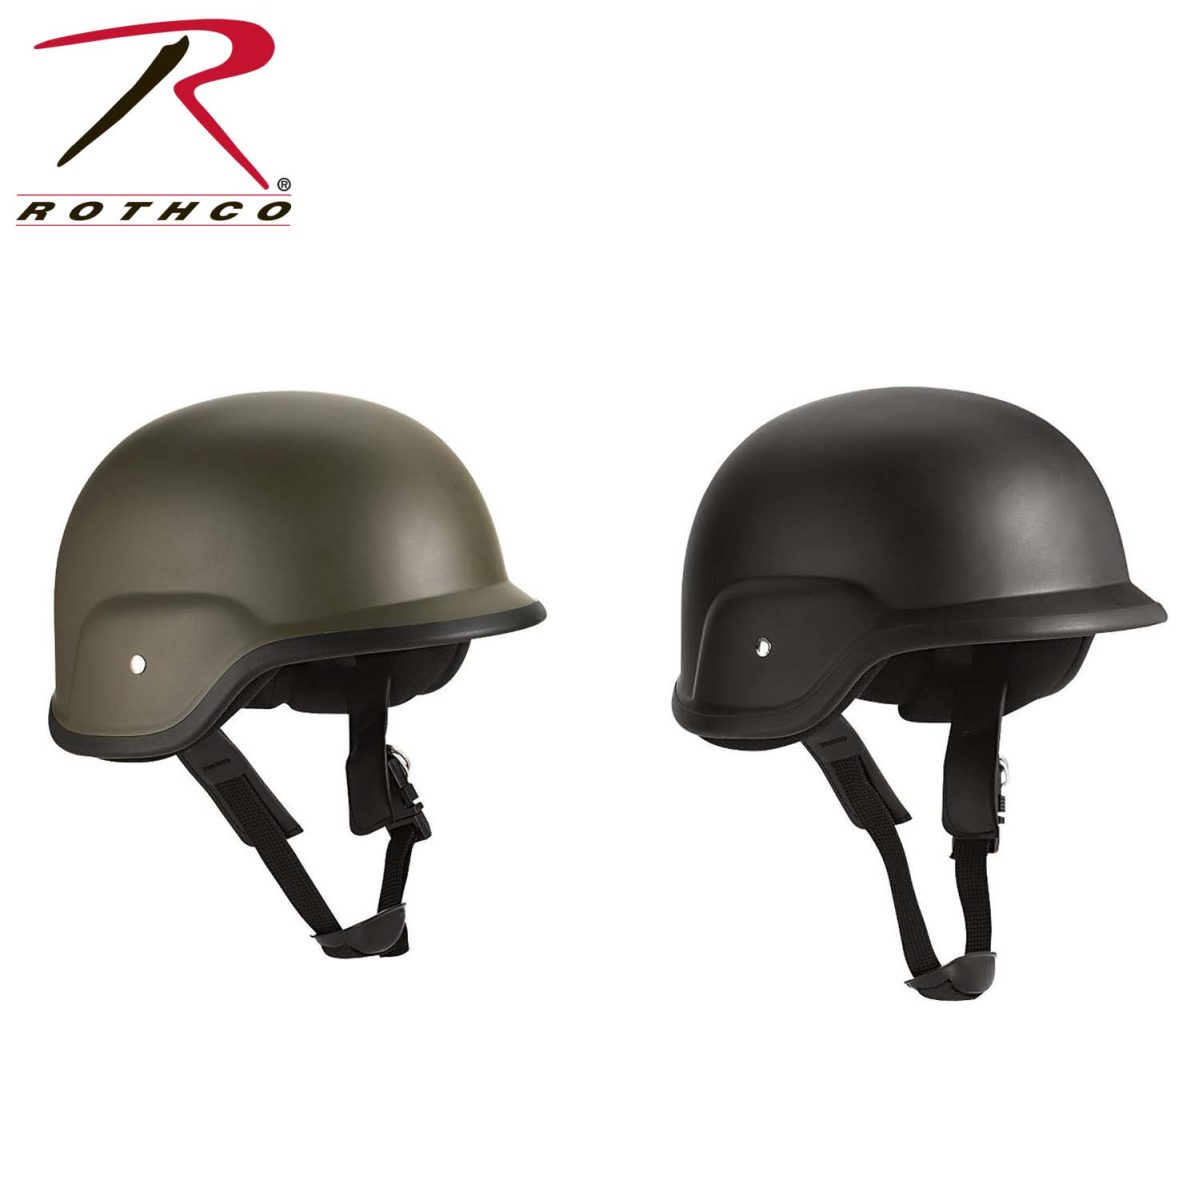 Military & Tactical Helmets